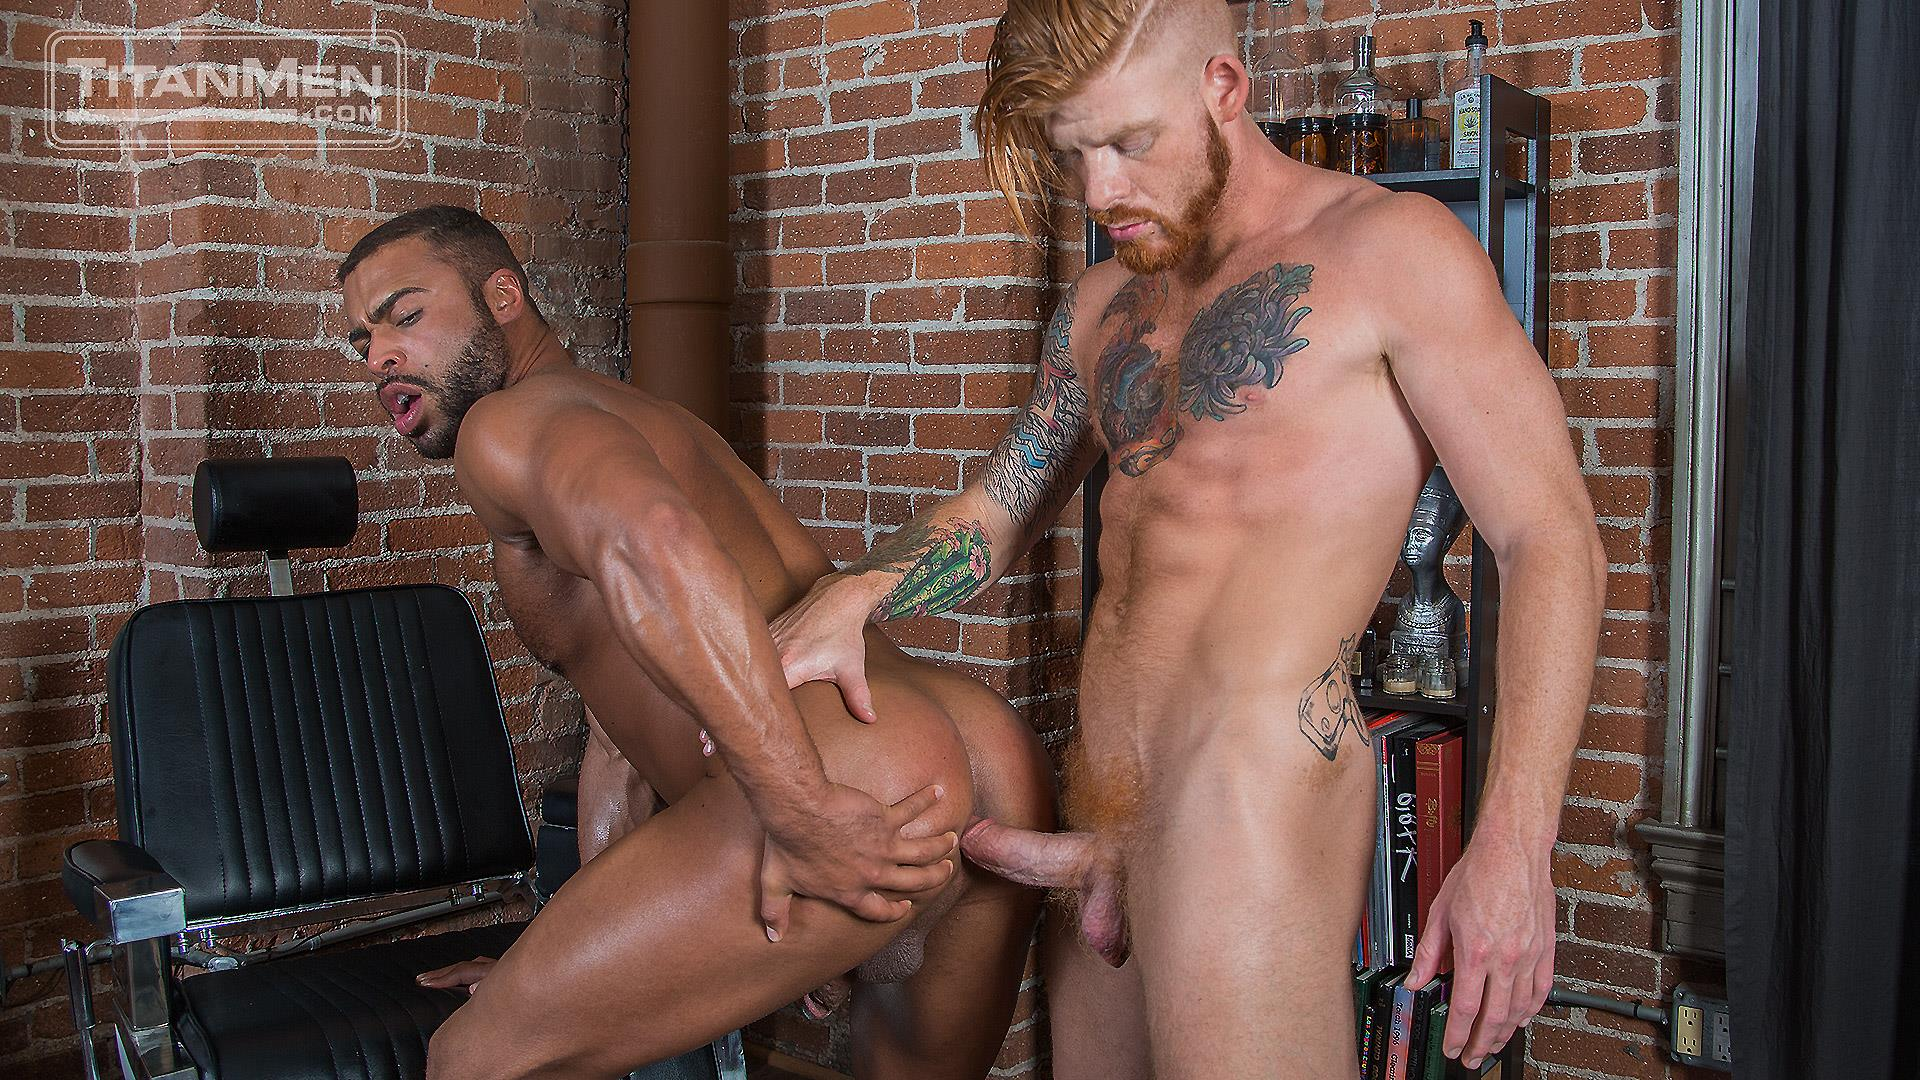 TitanMen-Micah-Brandt-and-Bennett-Anthony-Interracial-Muscle-Hunks-Flip-Fucking-Amateur-Gay-Porn-22 Micah Brandt and Bennett Anthony Flip-Fucking With Their Big Dicks